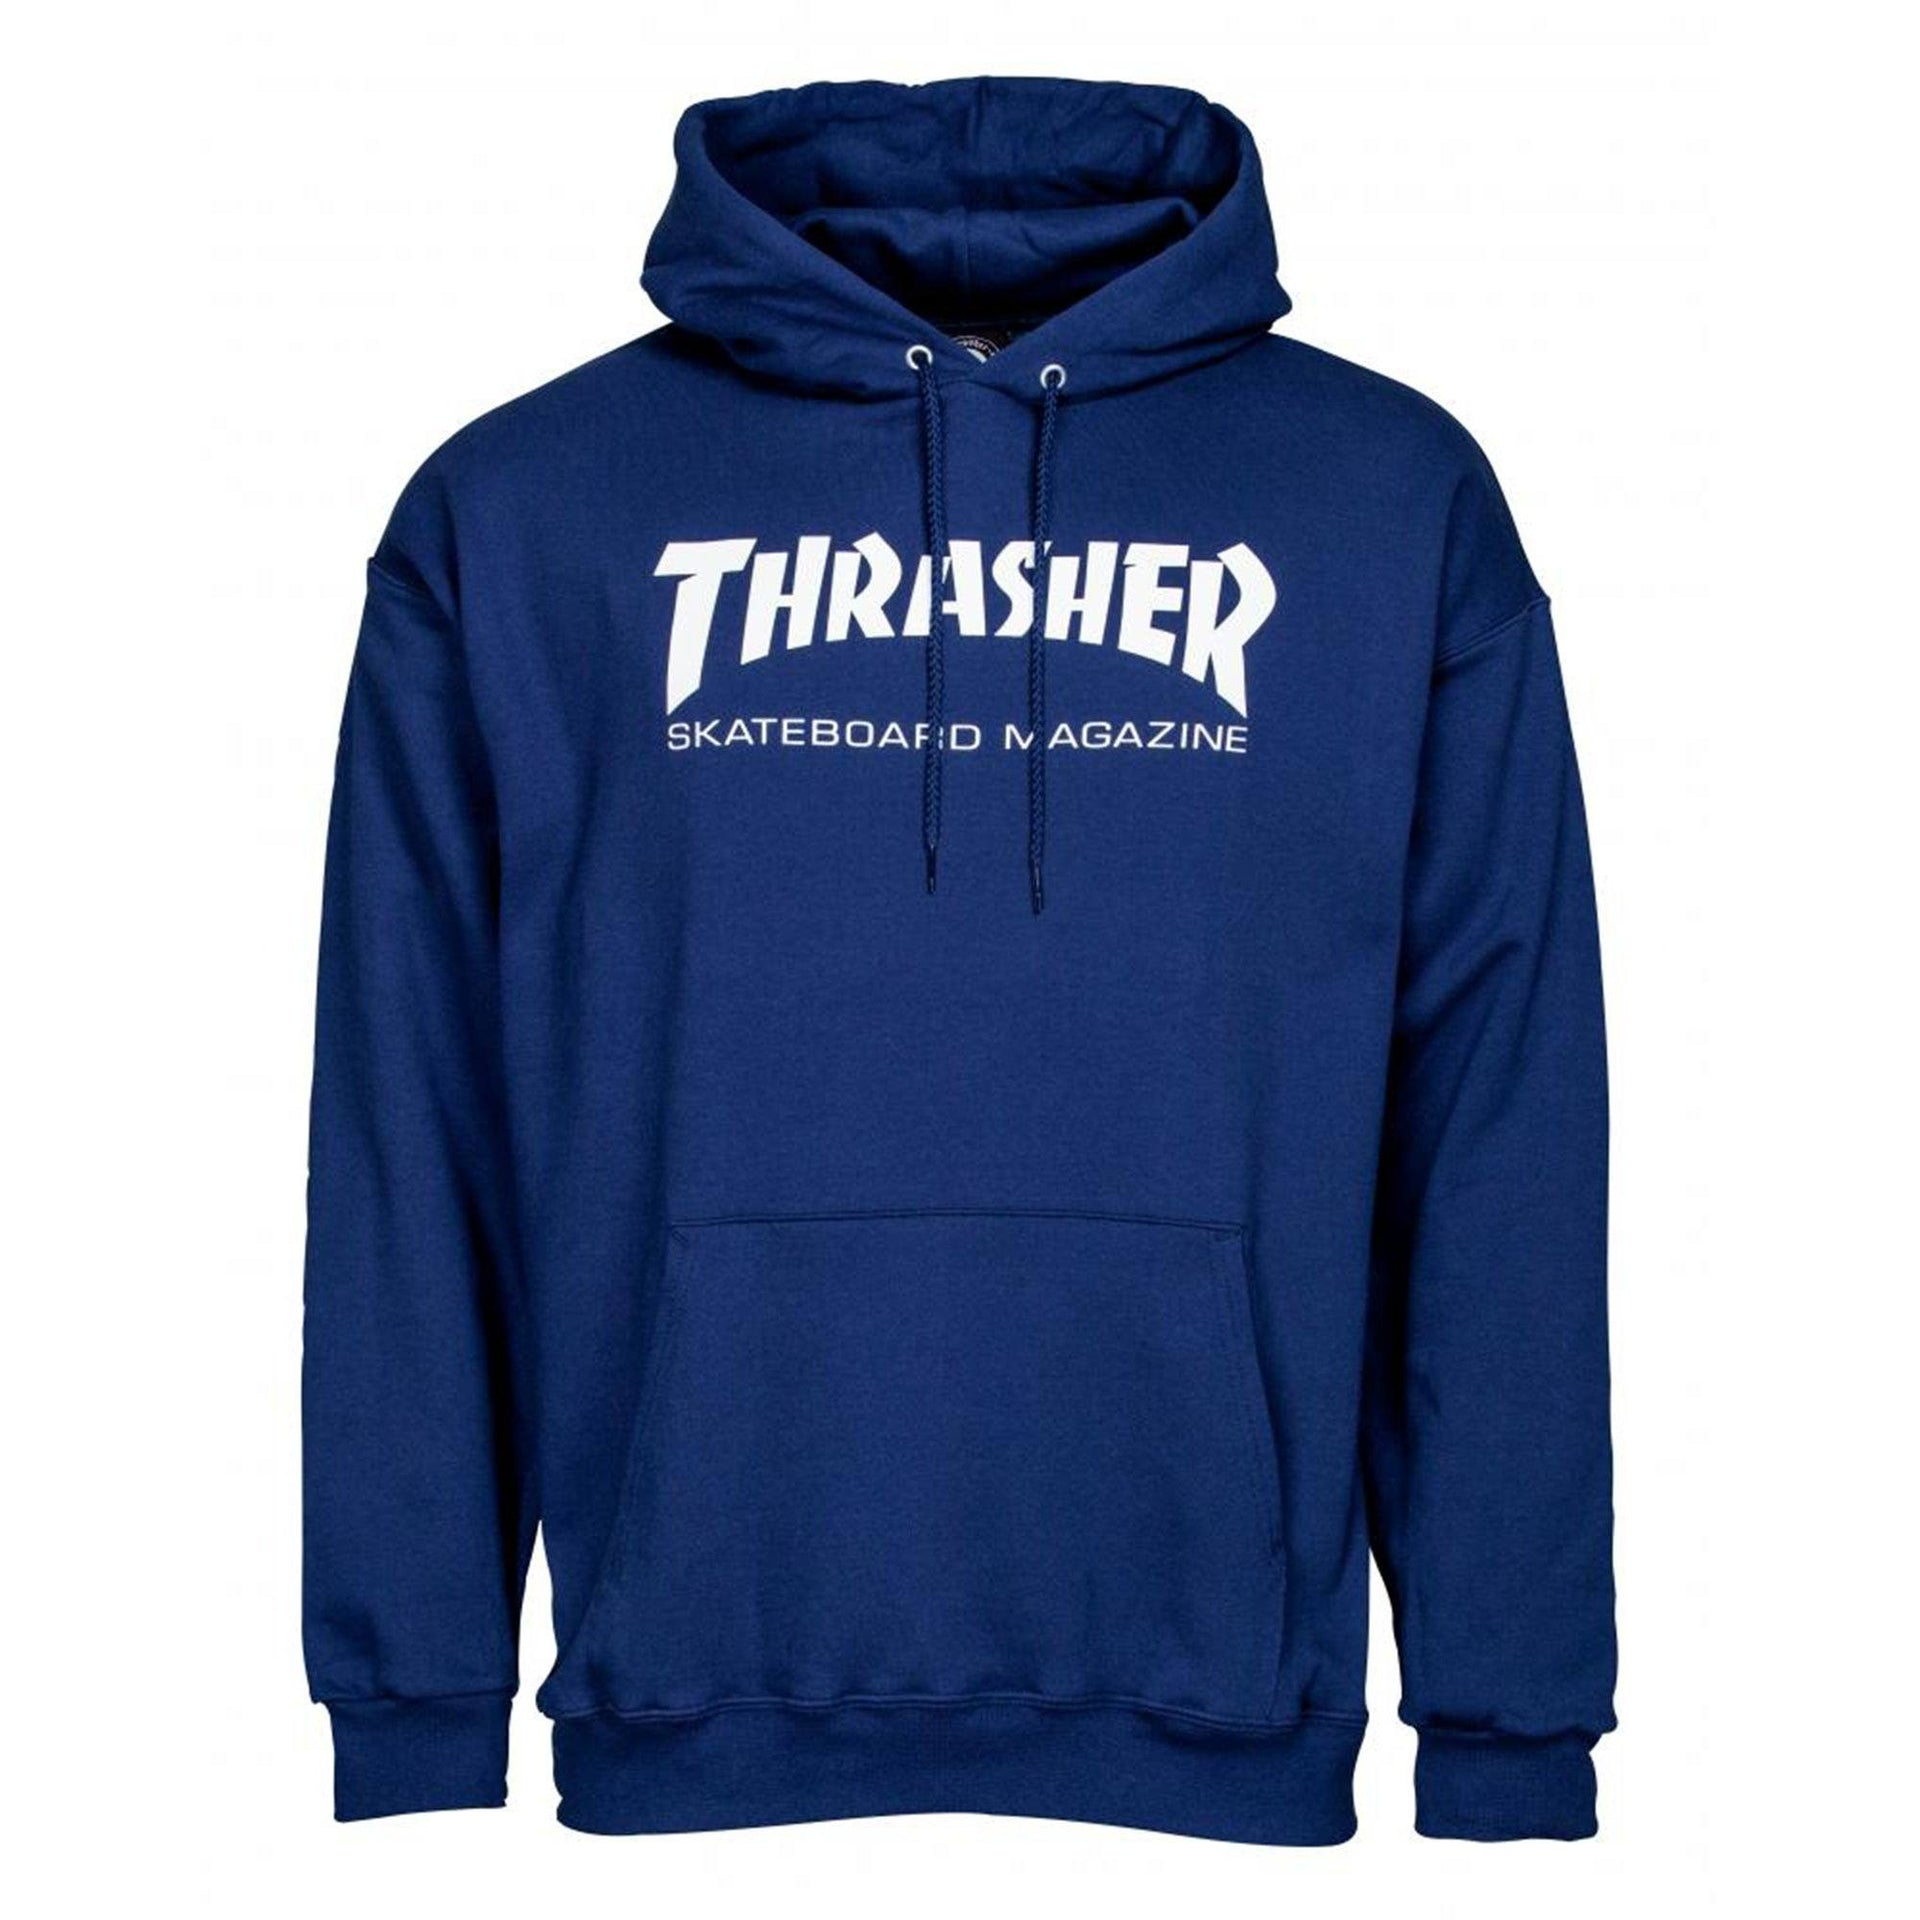 22be3c066ea9 Thrasher Skateboard Magazine Hoodie, Navy – Rampworx Shop